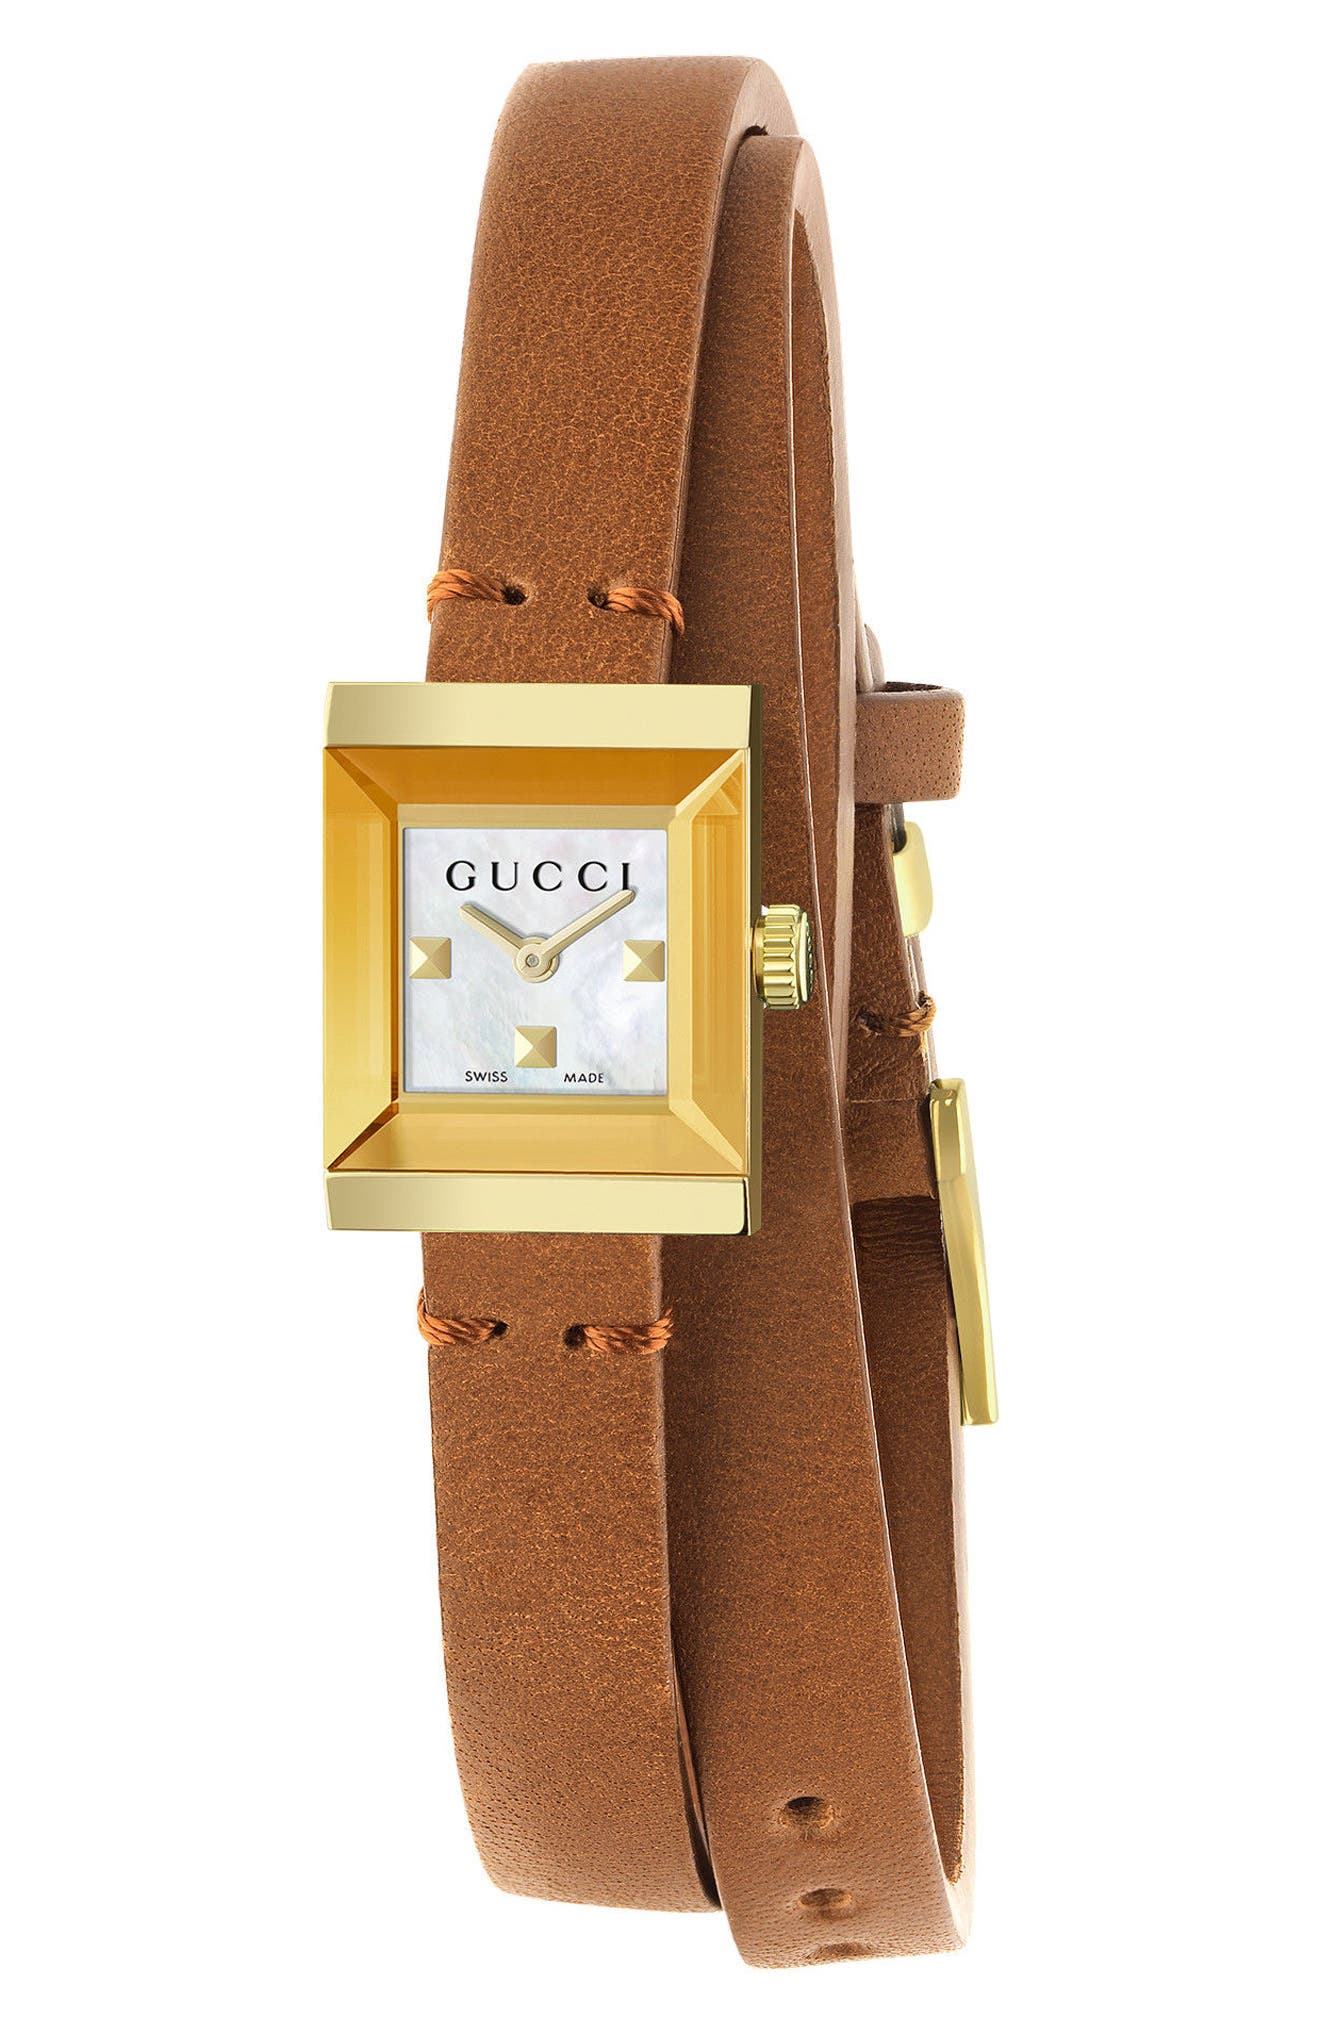 Main Image - Gucci G-Frame Leather Wrap Strap Watch, 14mm x 18mm